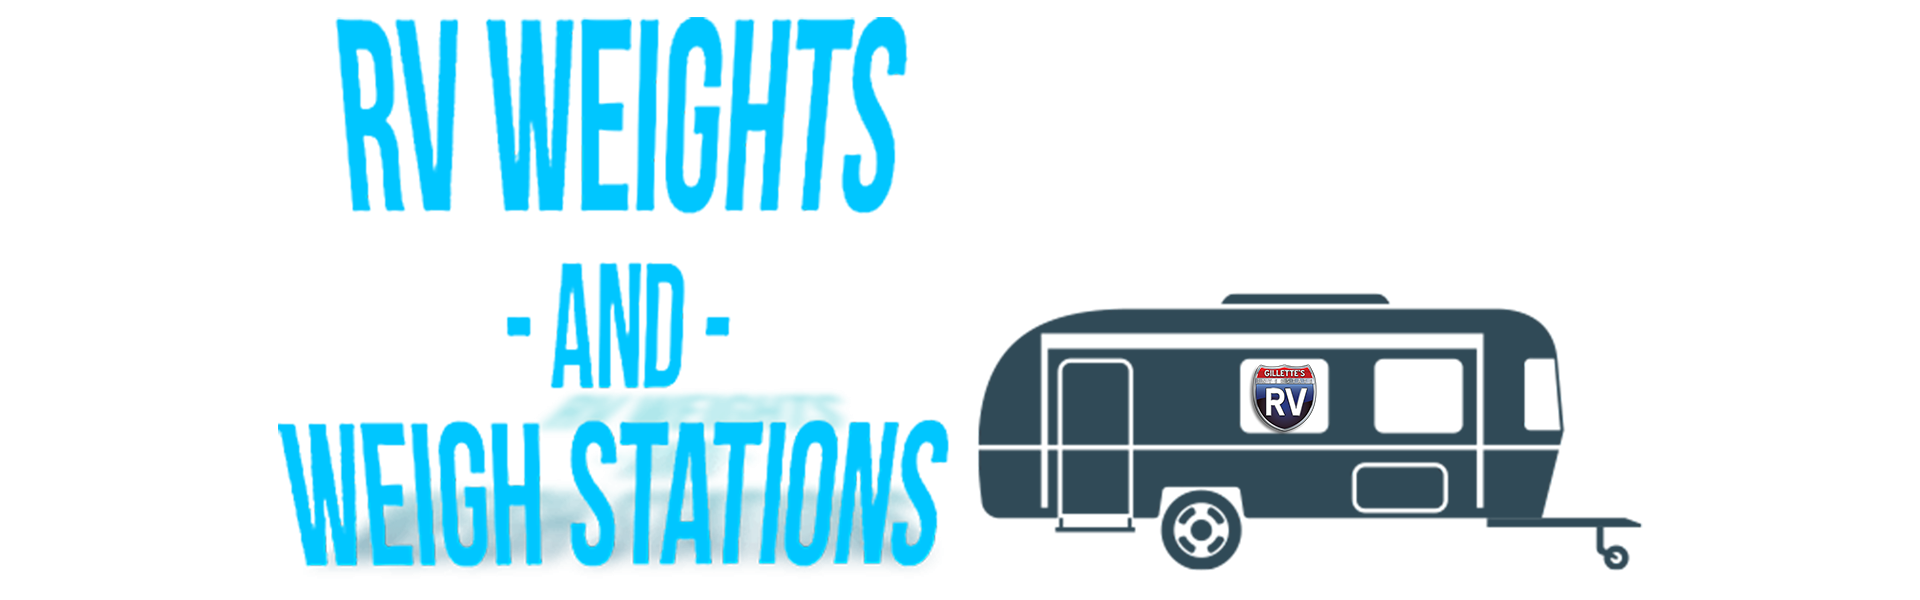 RV Weights and weigh stations Banner